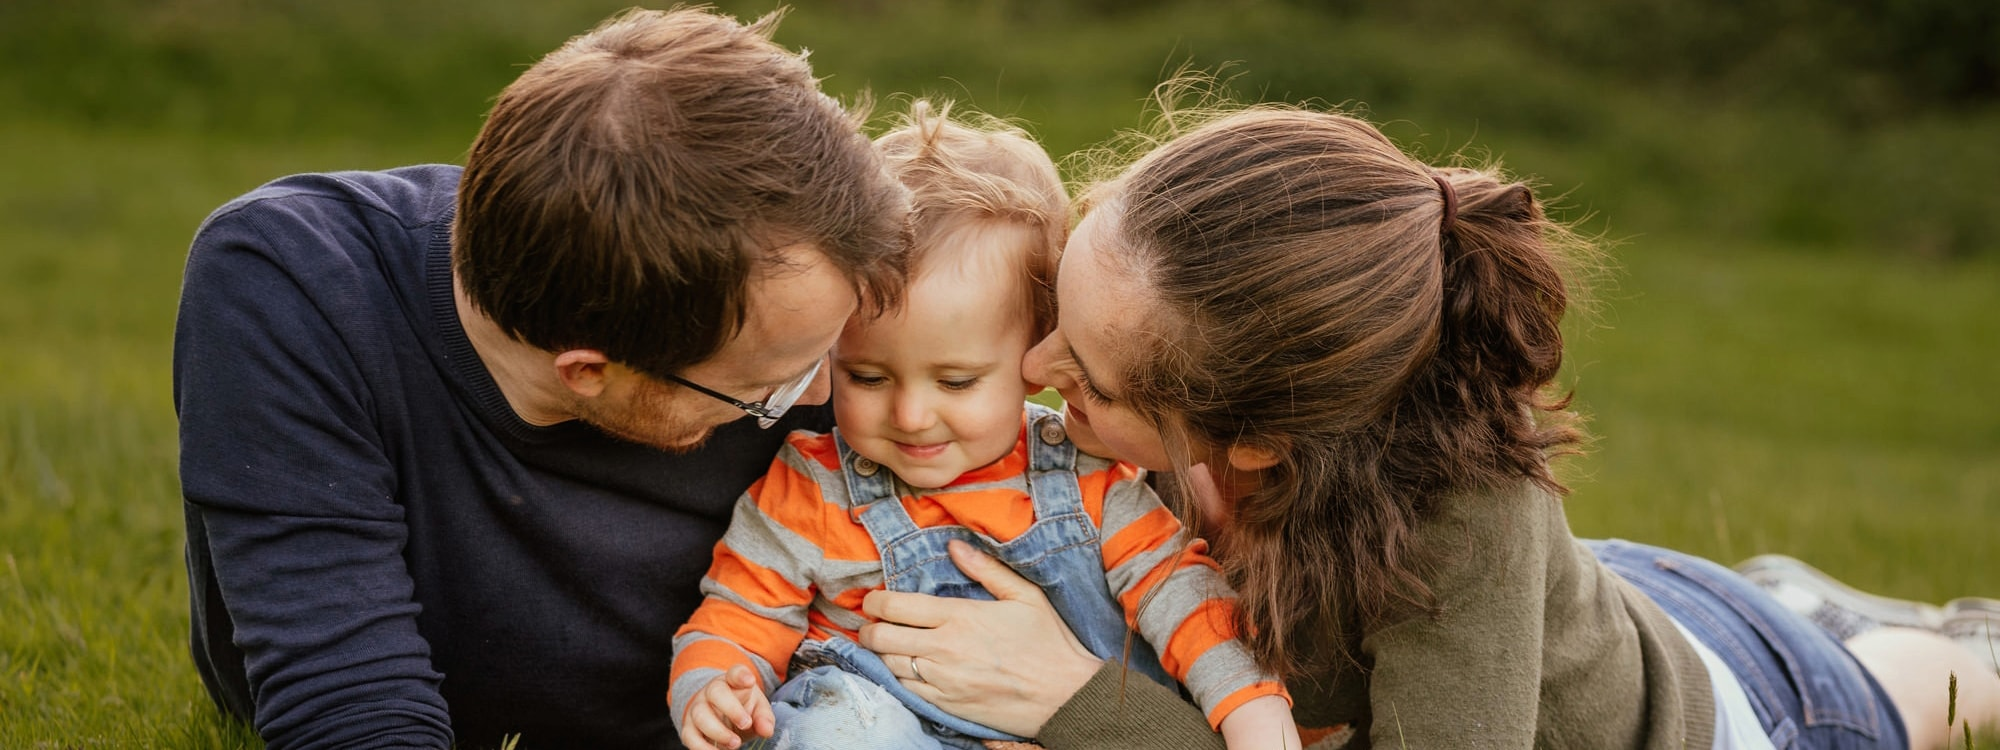 Family Get Close To Baby in Embrace Natural Family Photography Essex